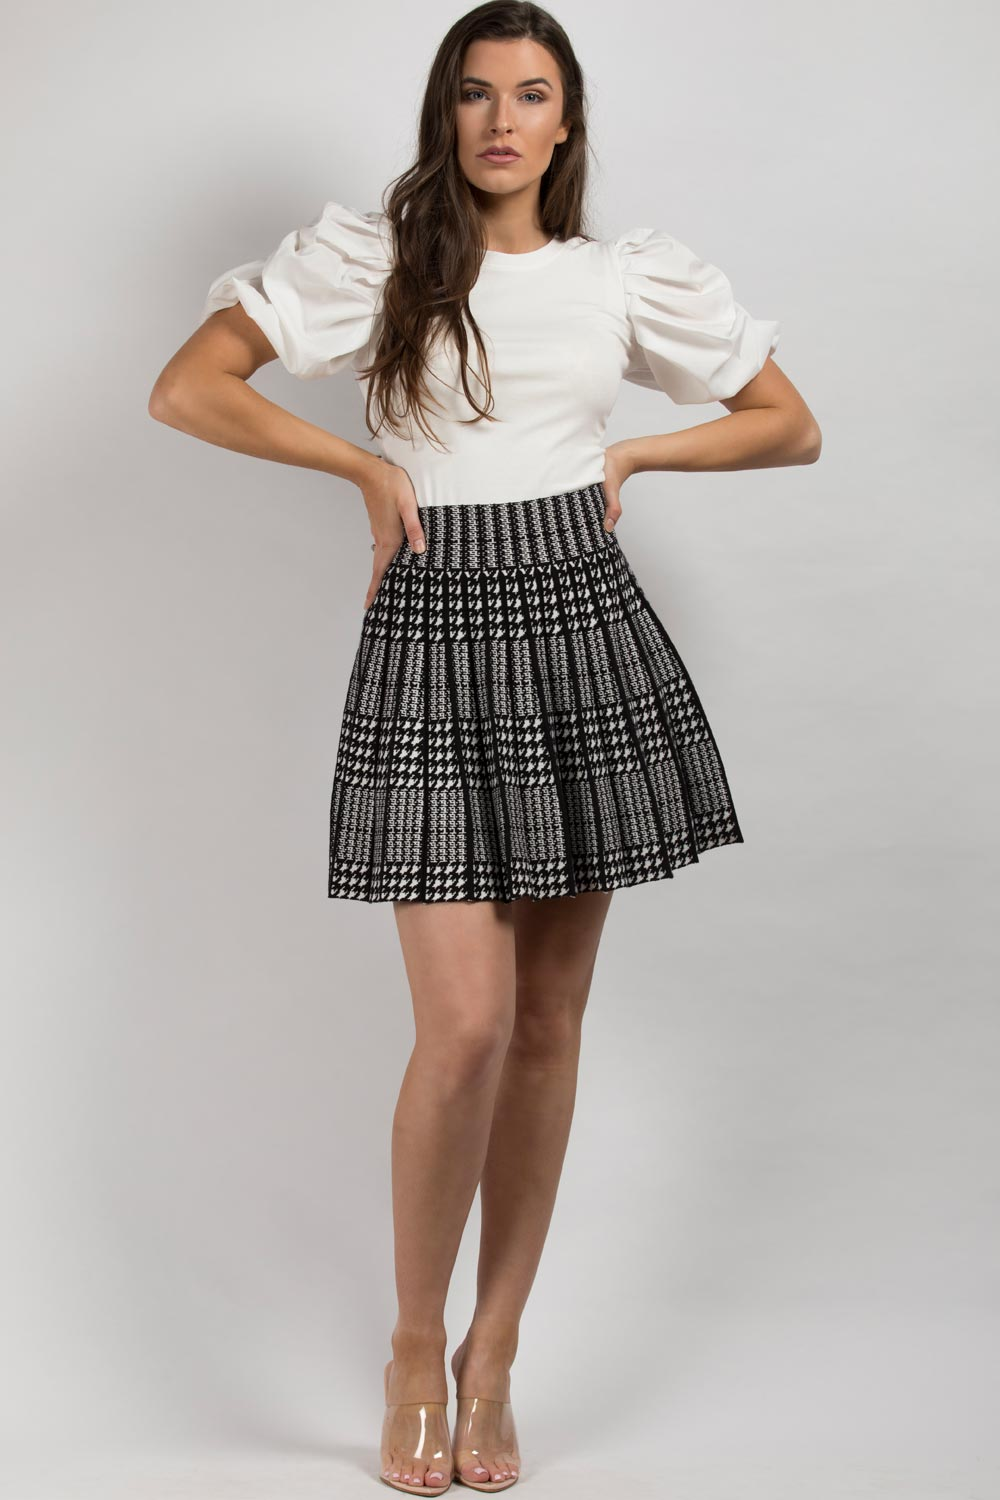 dogtooth skater skirt